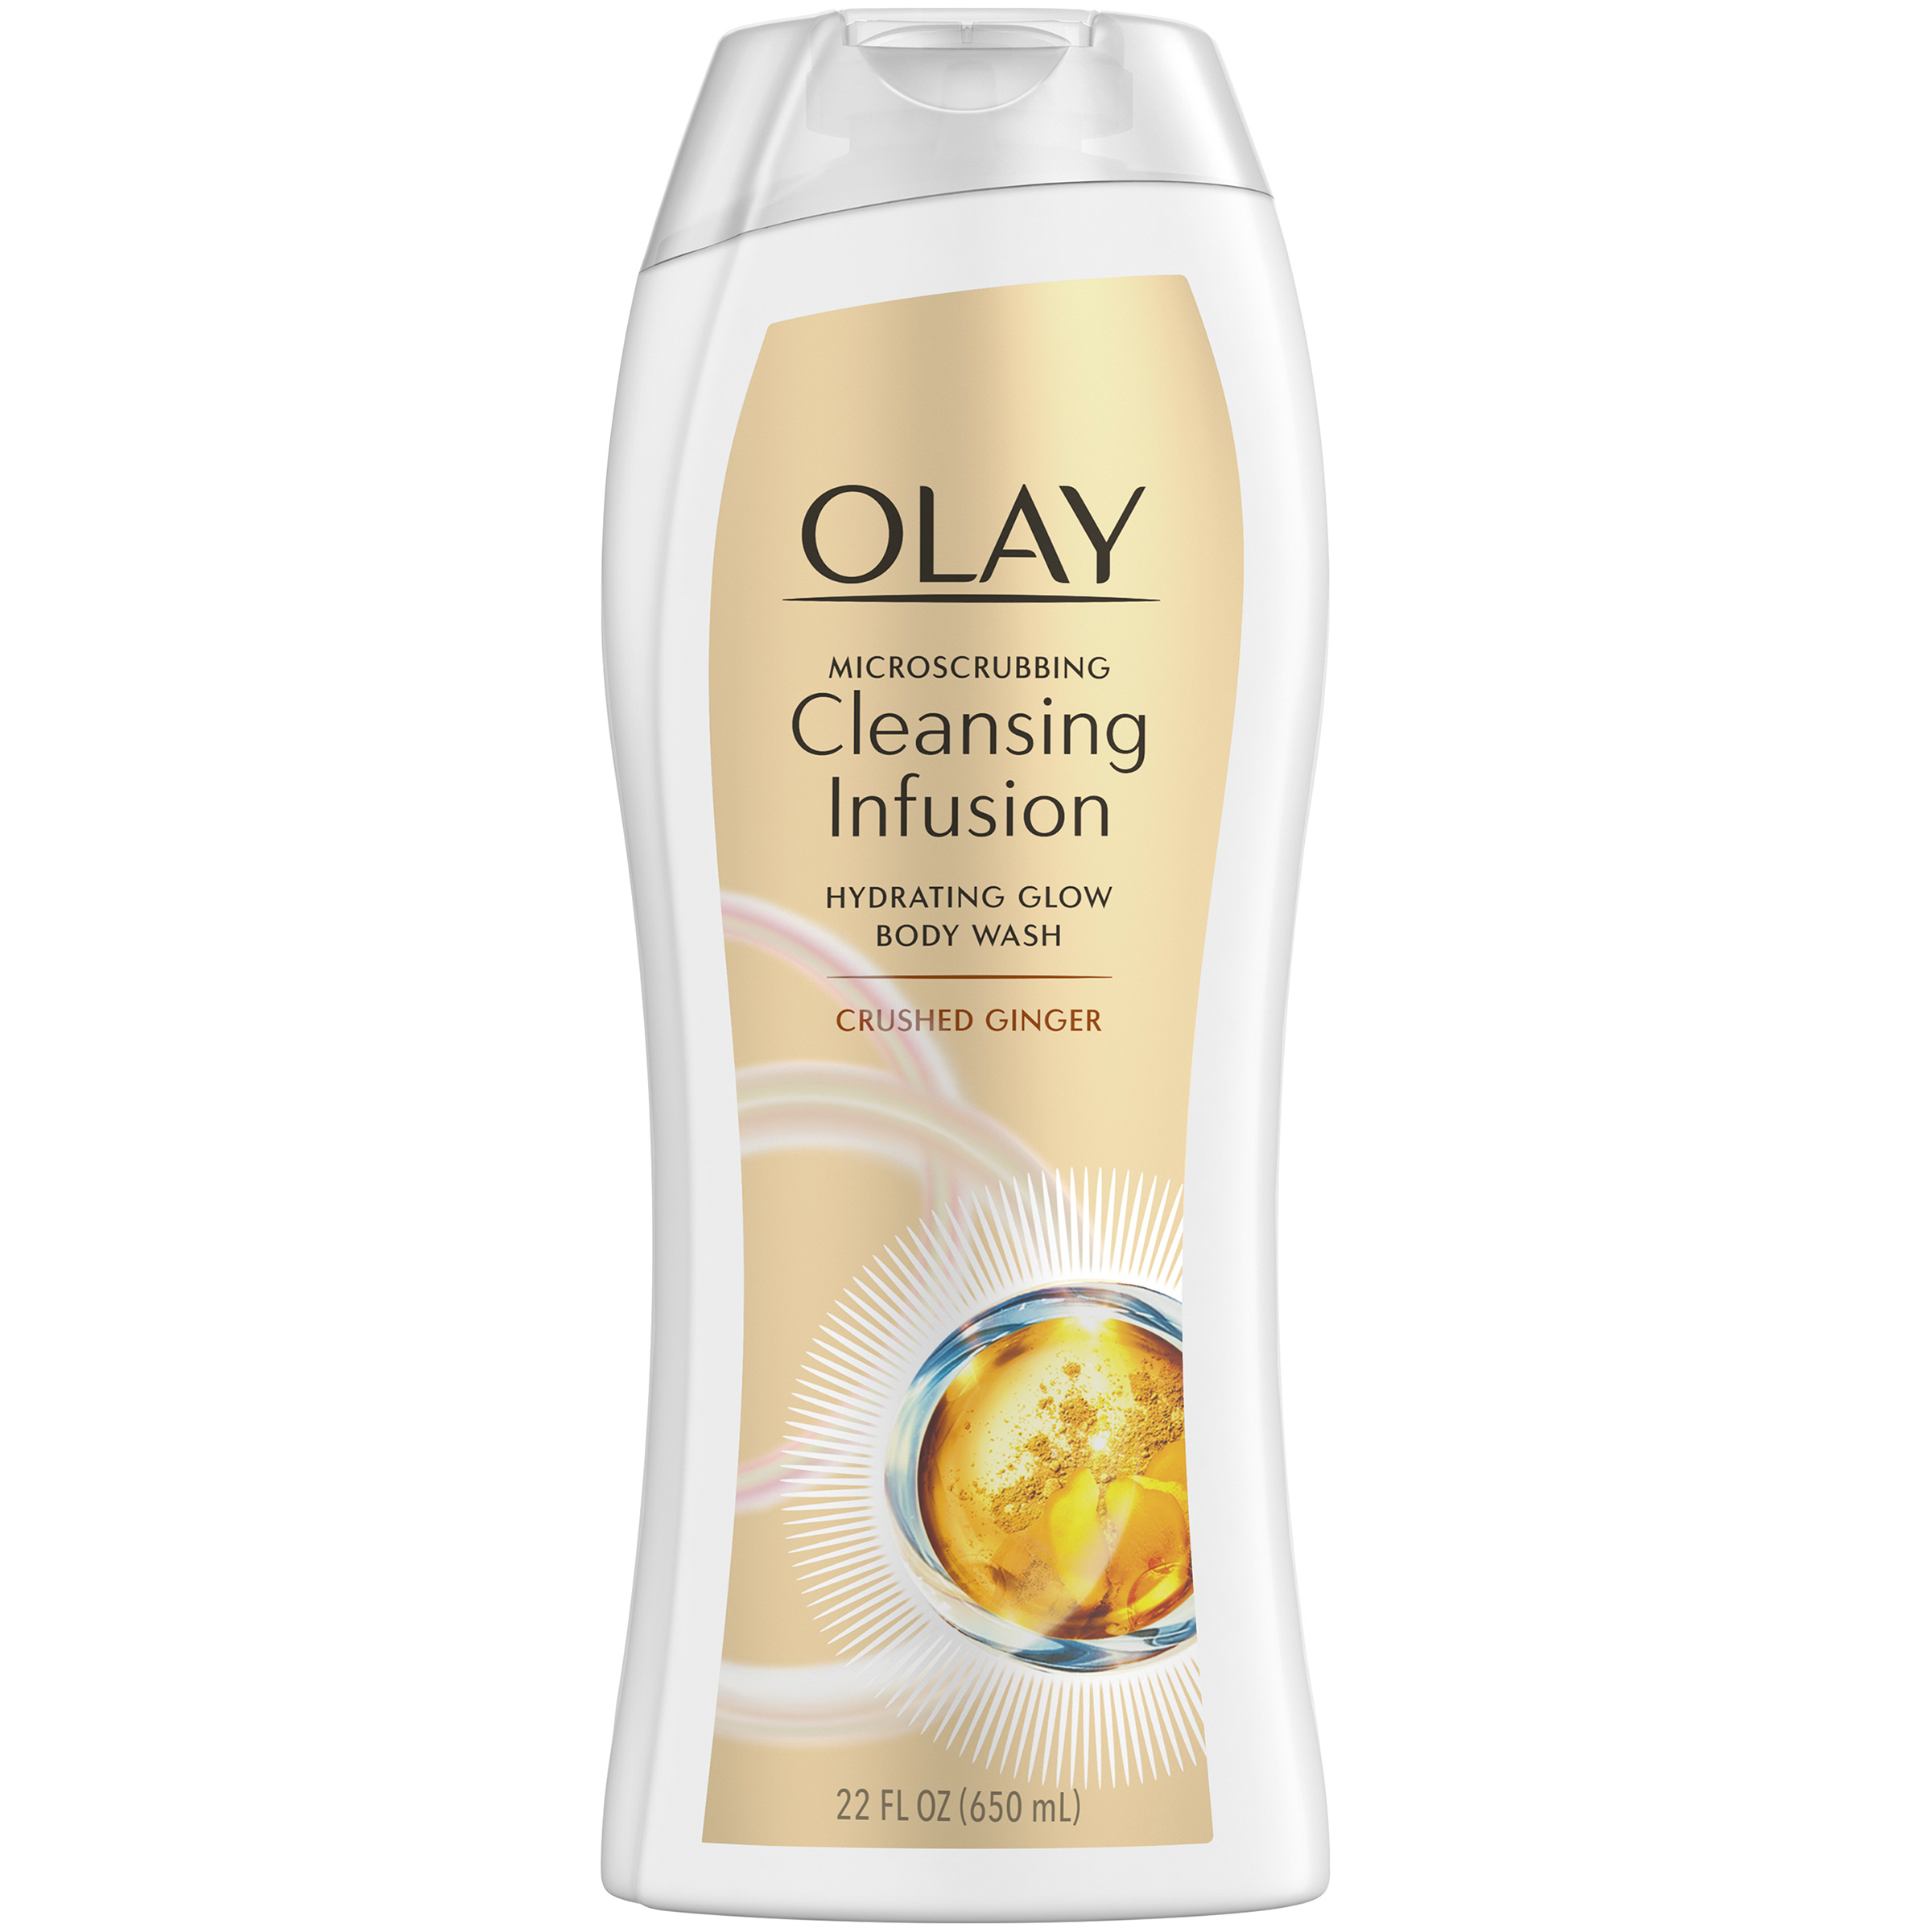 Olay Microscrubbing Cleansing Infusion Crushed Ginger Body Wash, 22 oz